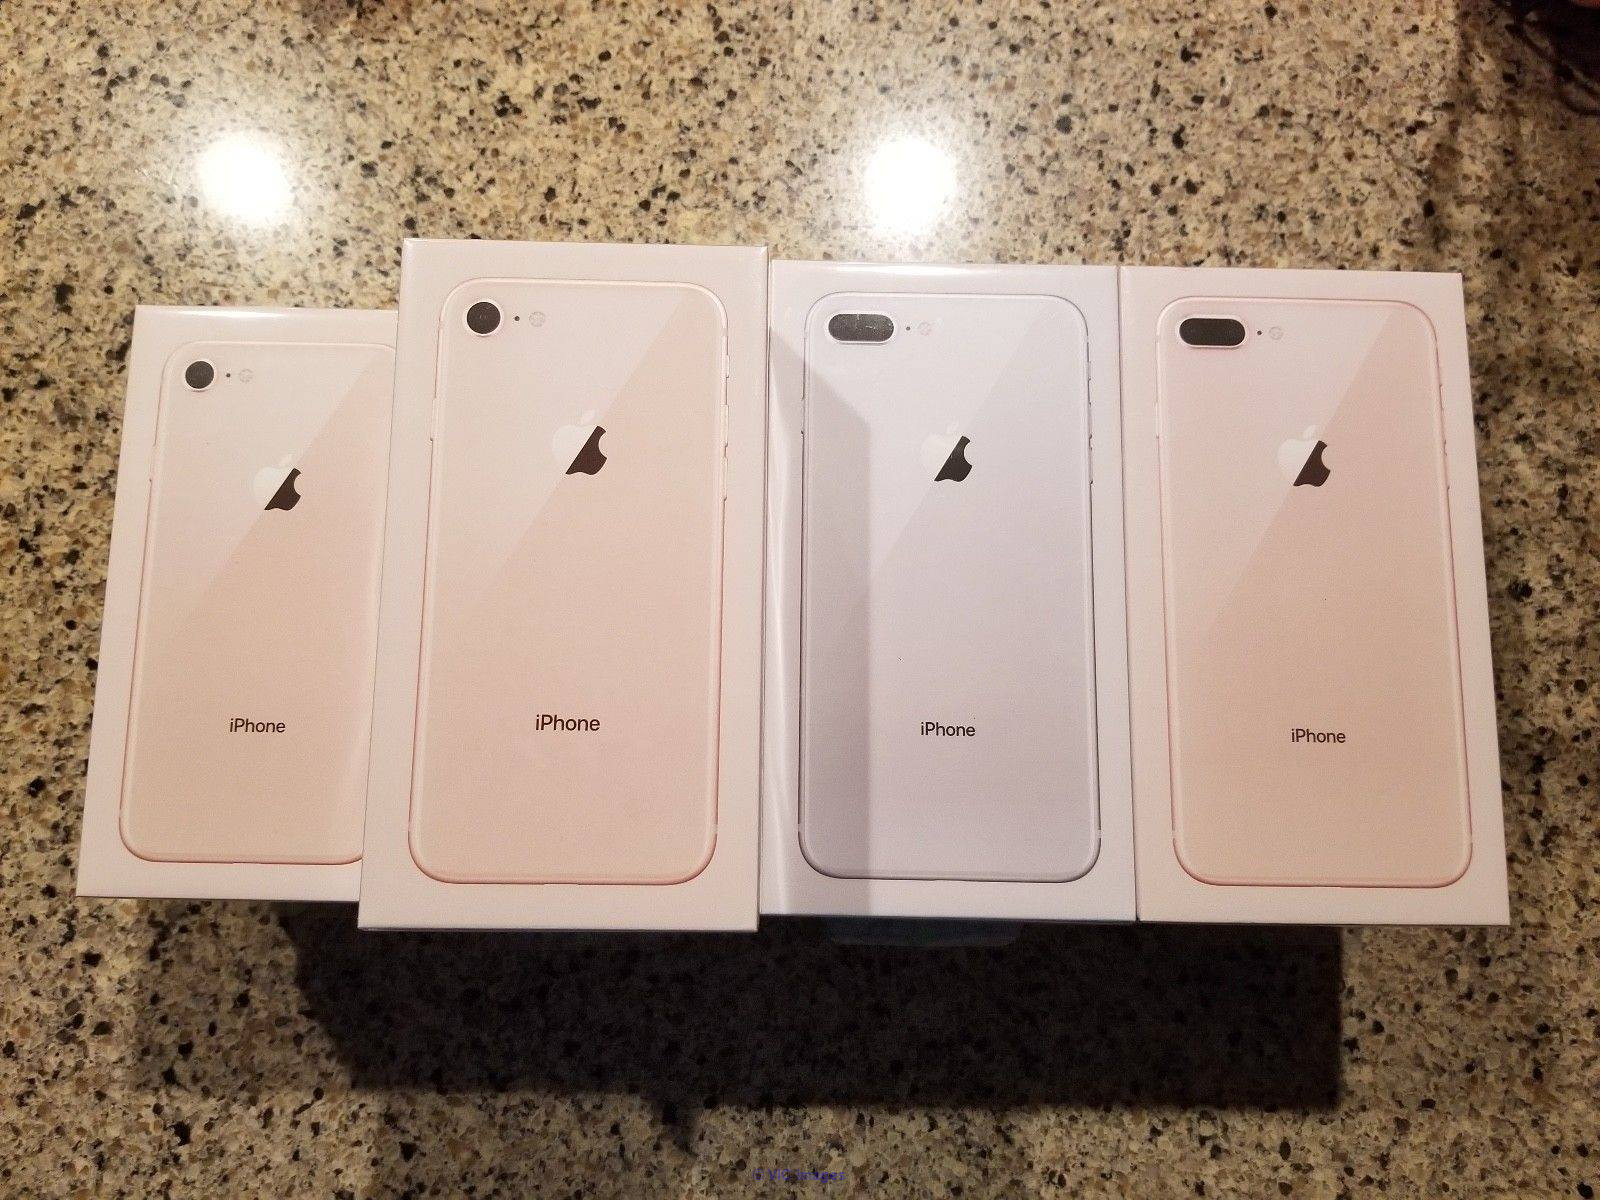 Apple iPhone 8 And 8 Plus (64/256 GB) Factory Unlocked Calgary, Alberta, Canada Annonces Classées